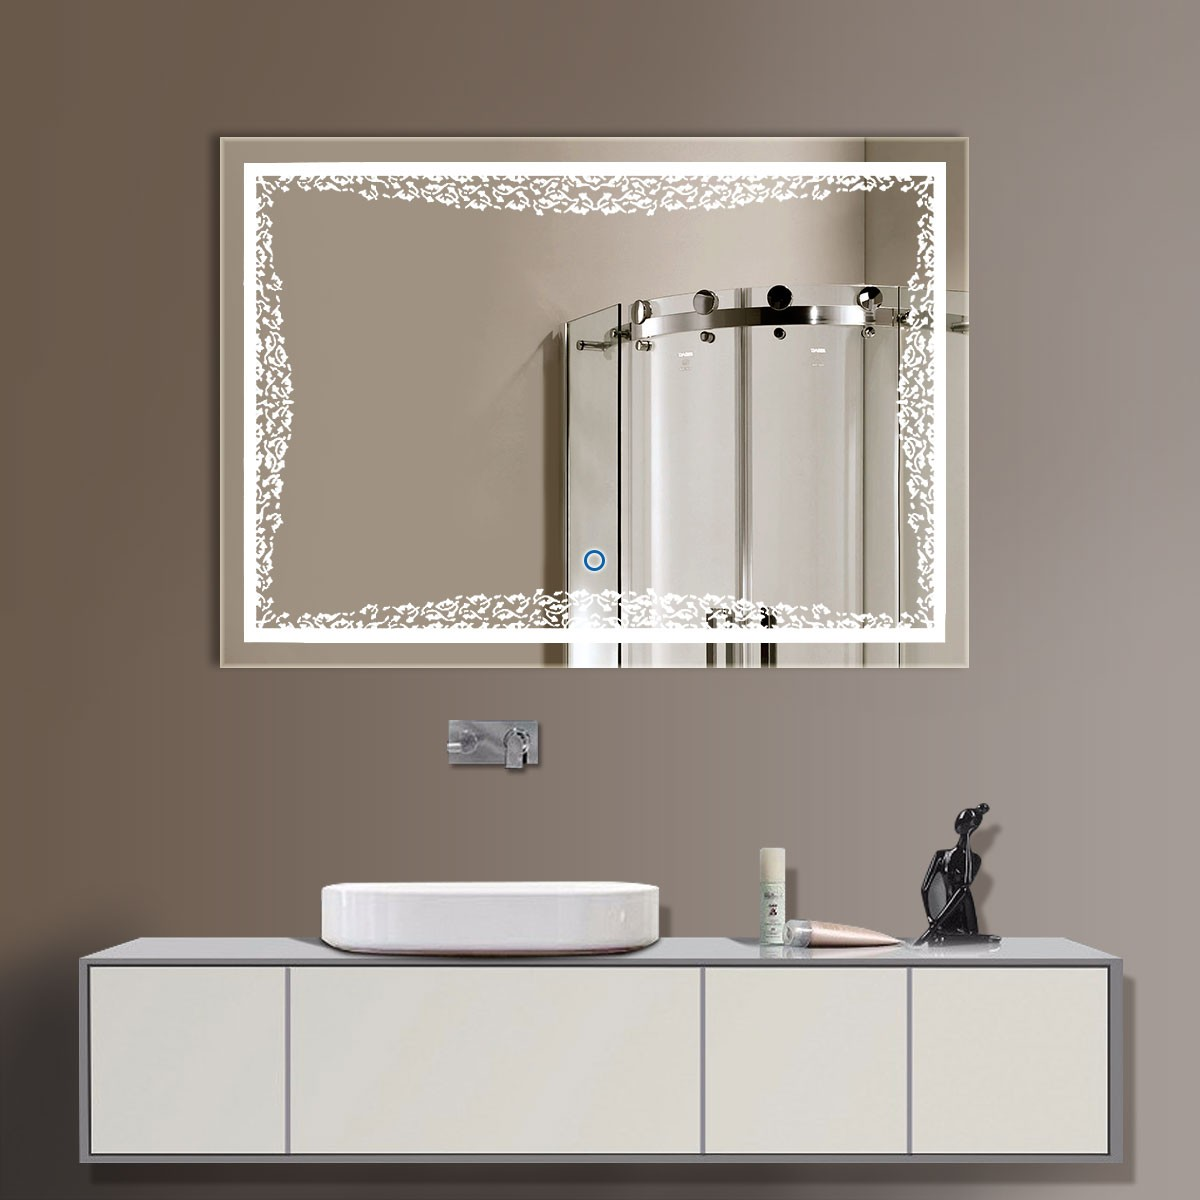 32 x 24 In Horizontal LED Bathroom Mirror with Touch Button (DK-OD-N011)